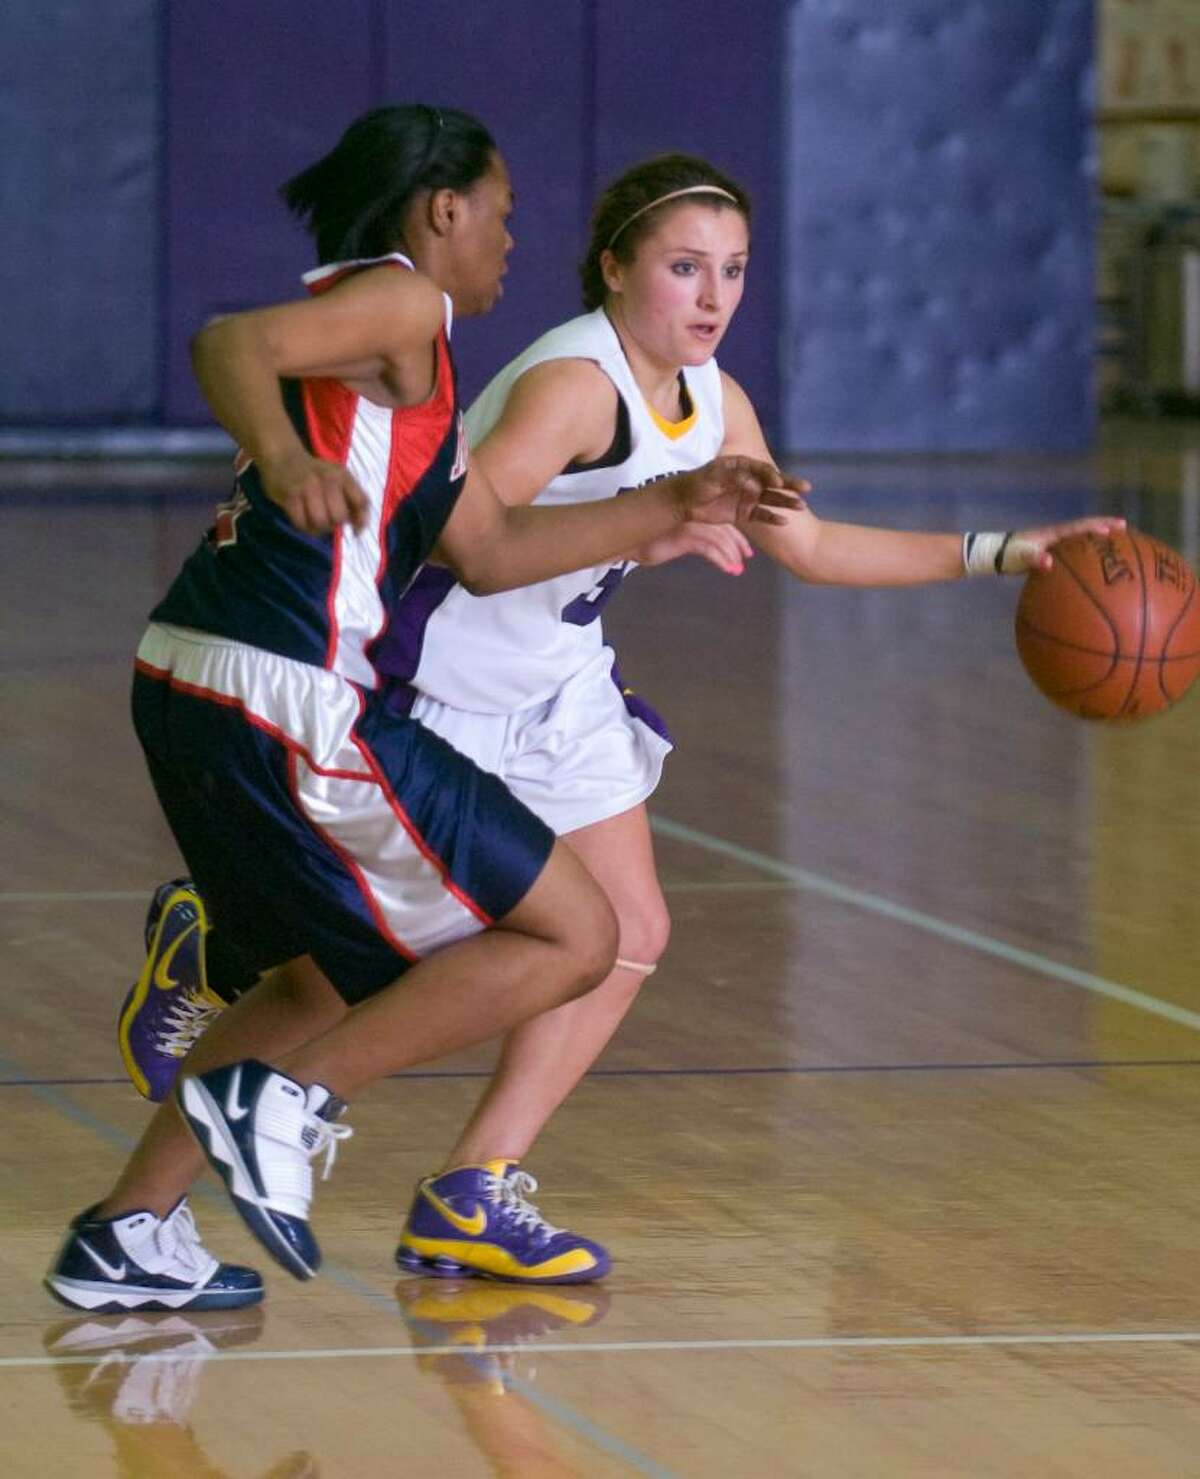 Westhill's Allyson Souza, right, tries to get around Brien McMahon's Khea Gibbs, left, during an FCIAC girls basketball game at Westhill High School in Stamford, Conn. on Tuesday, Jan. 26, 2010